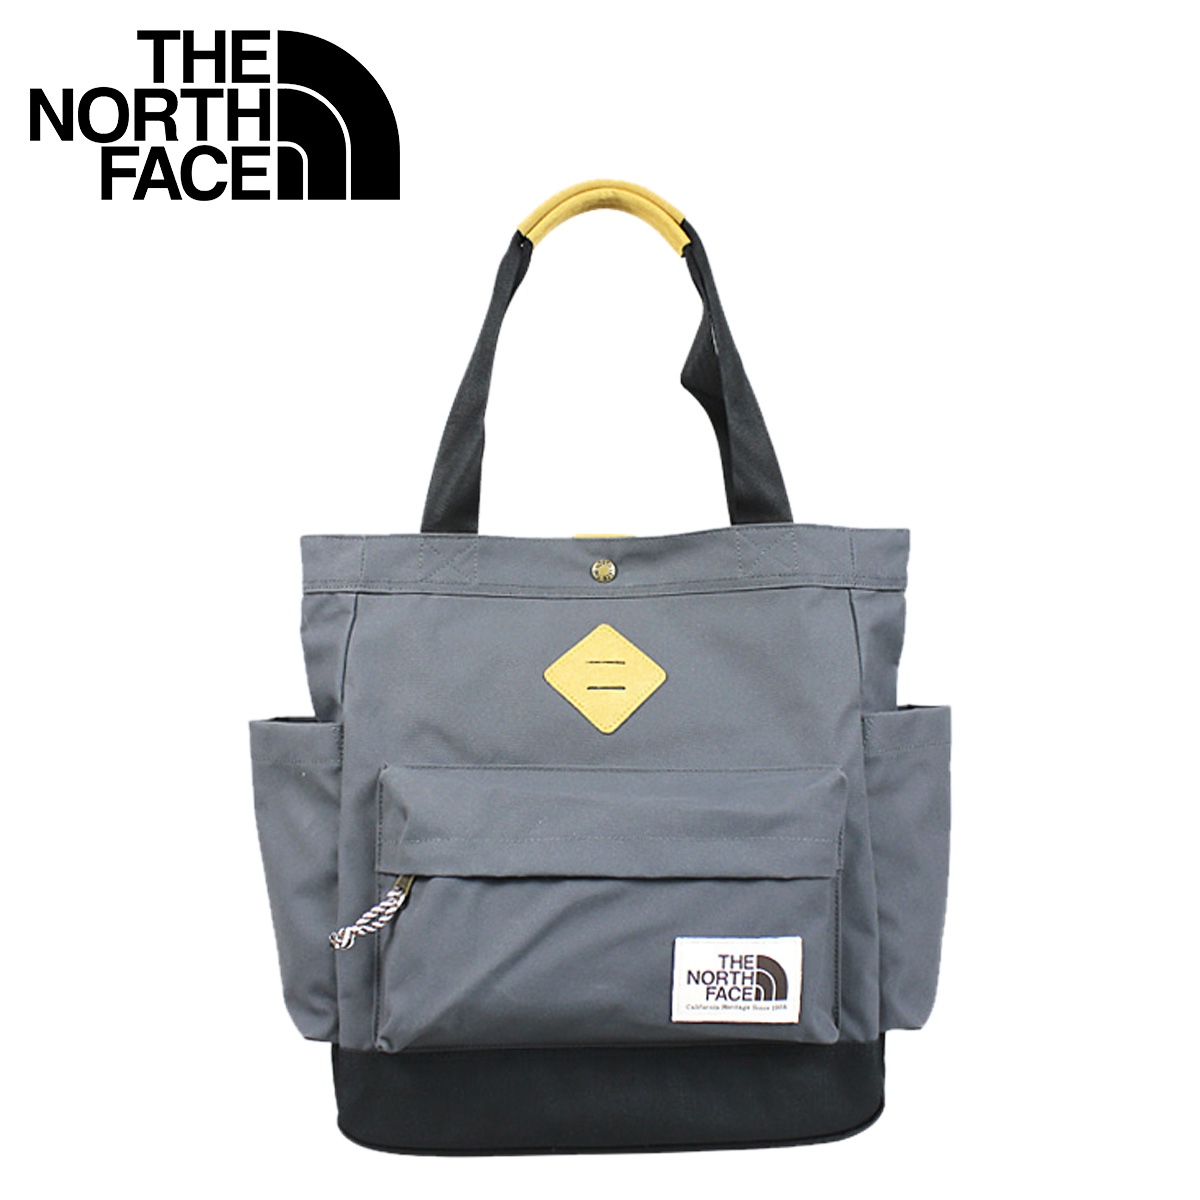 Sugar Online C086 Gray Four Point Tote 8 25 Shinnyu Load Regular Latest For The North Face Bag Men 2 014 Years Rakuten Global Market